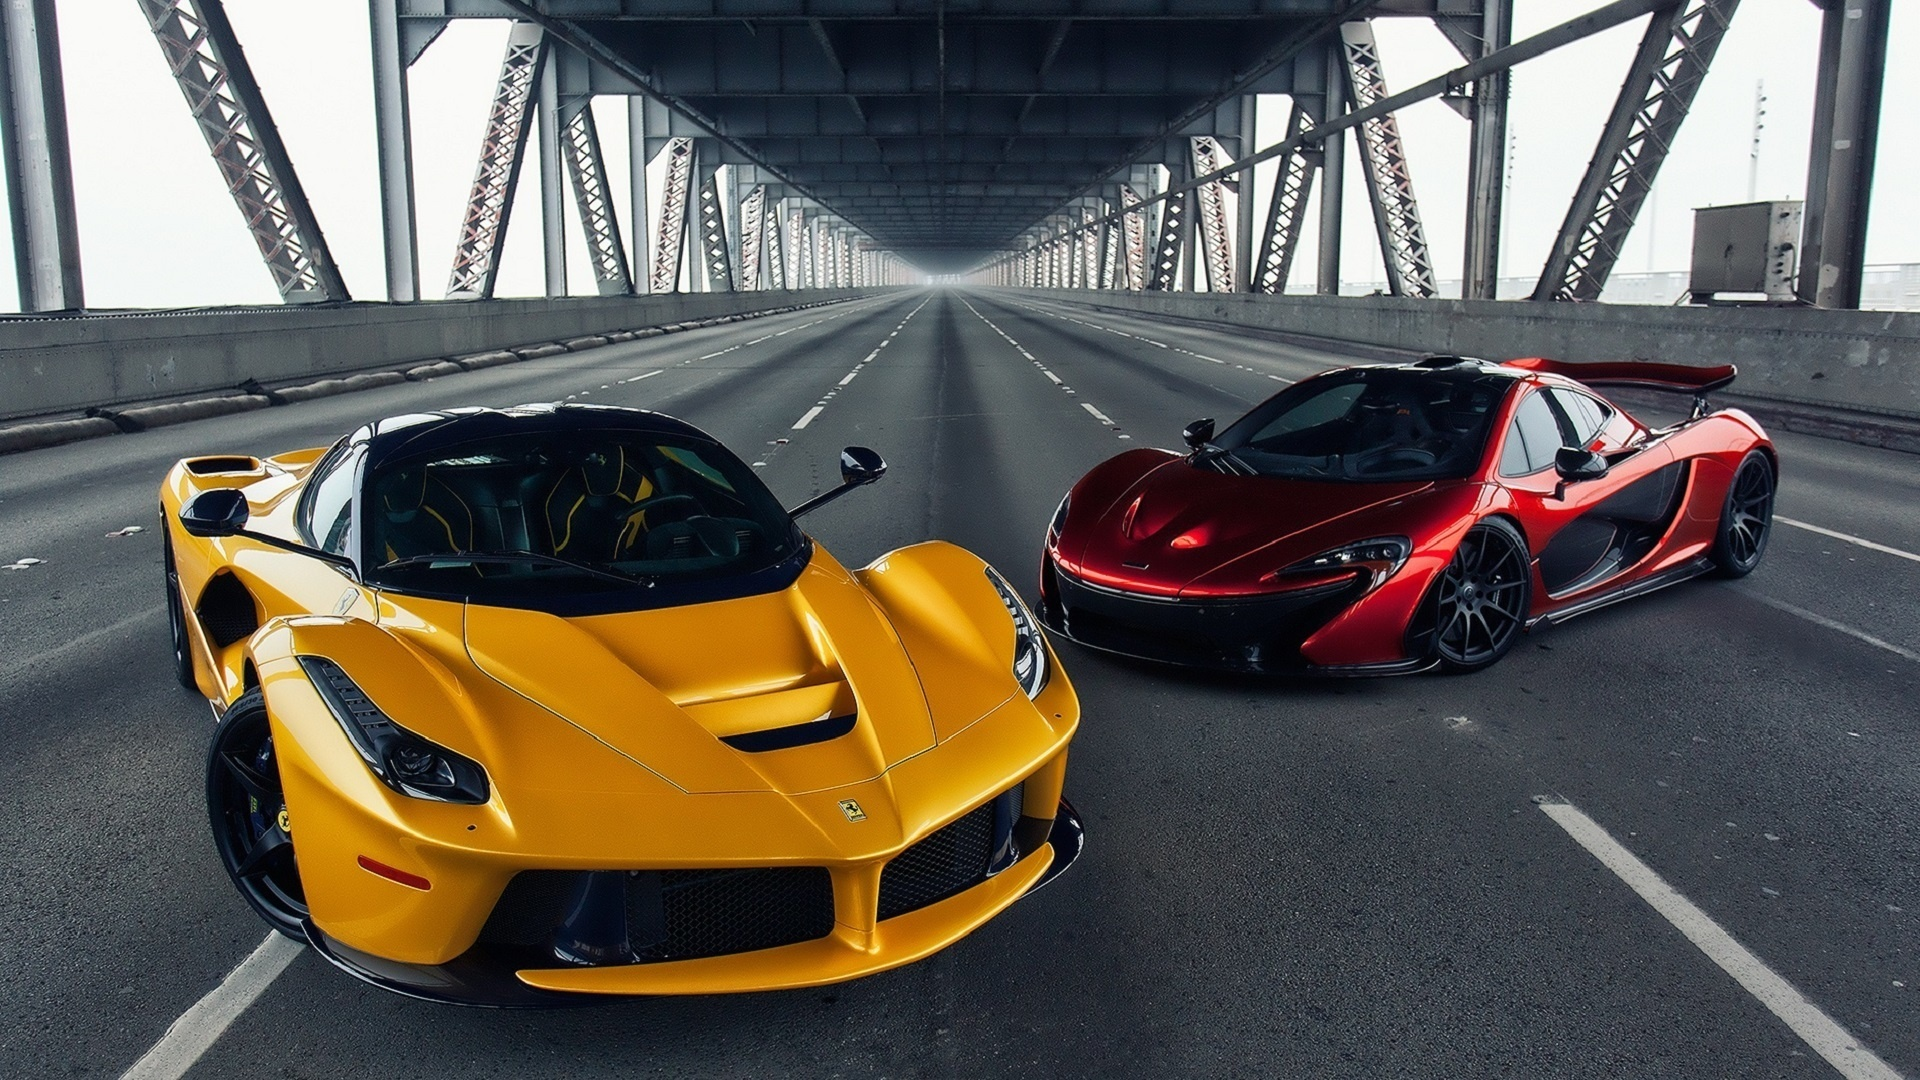 Ferrari-LaFerrari-vs-McLaren-P1-Bridge-HD-Wallpaper